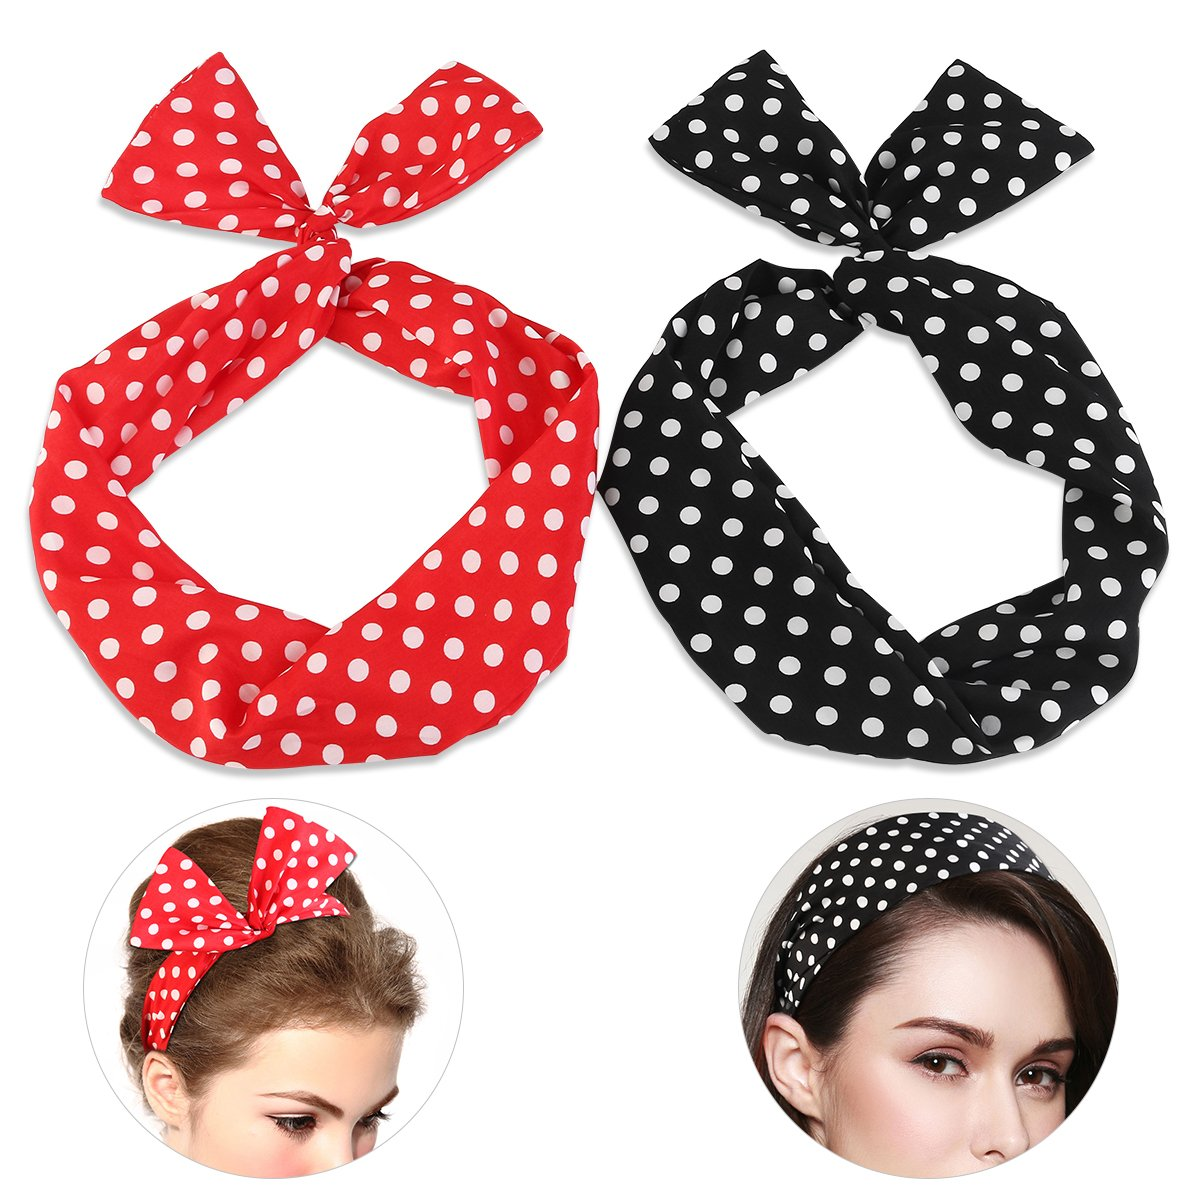 Pixnor Wire Headband Retro Bowknot Polka Dot Wire Hair Holders For Women And Girls, Pack Of 2 by Pixnor